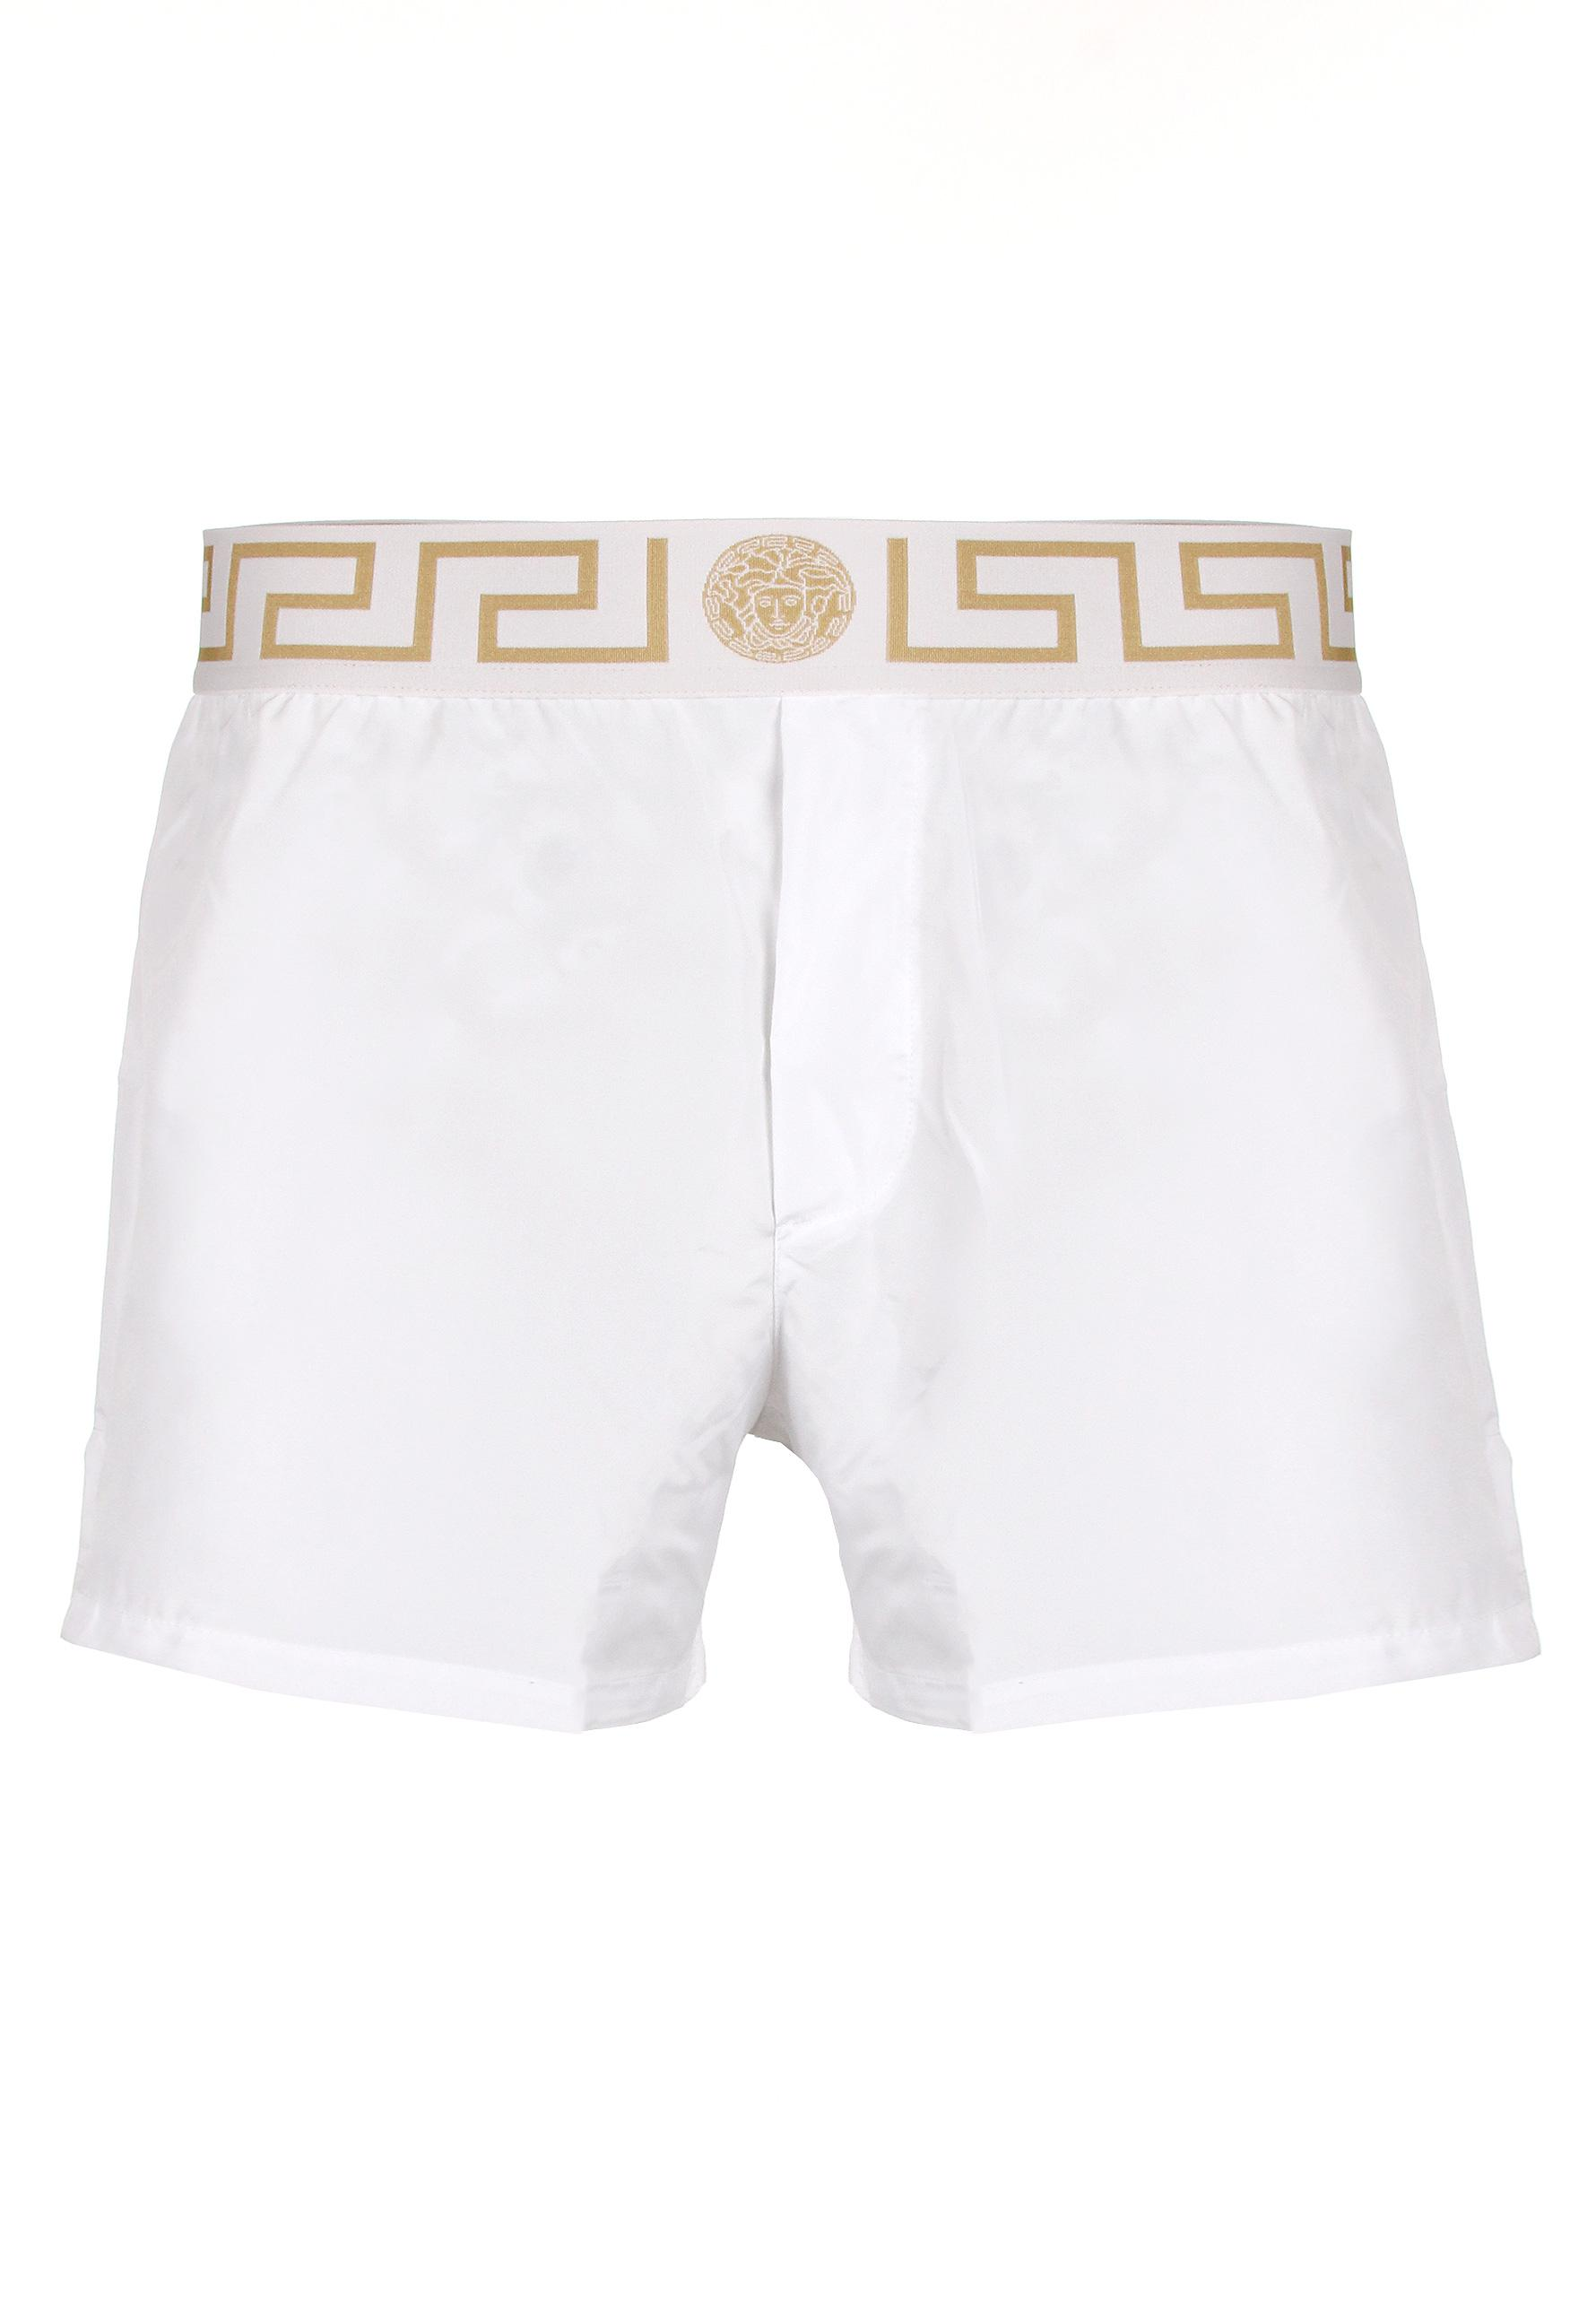 08c98be6df Versace Iconic Greca Swimming Shorts White/gold in White for Men - Lyst